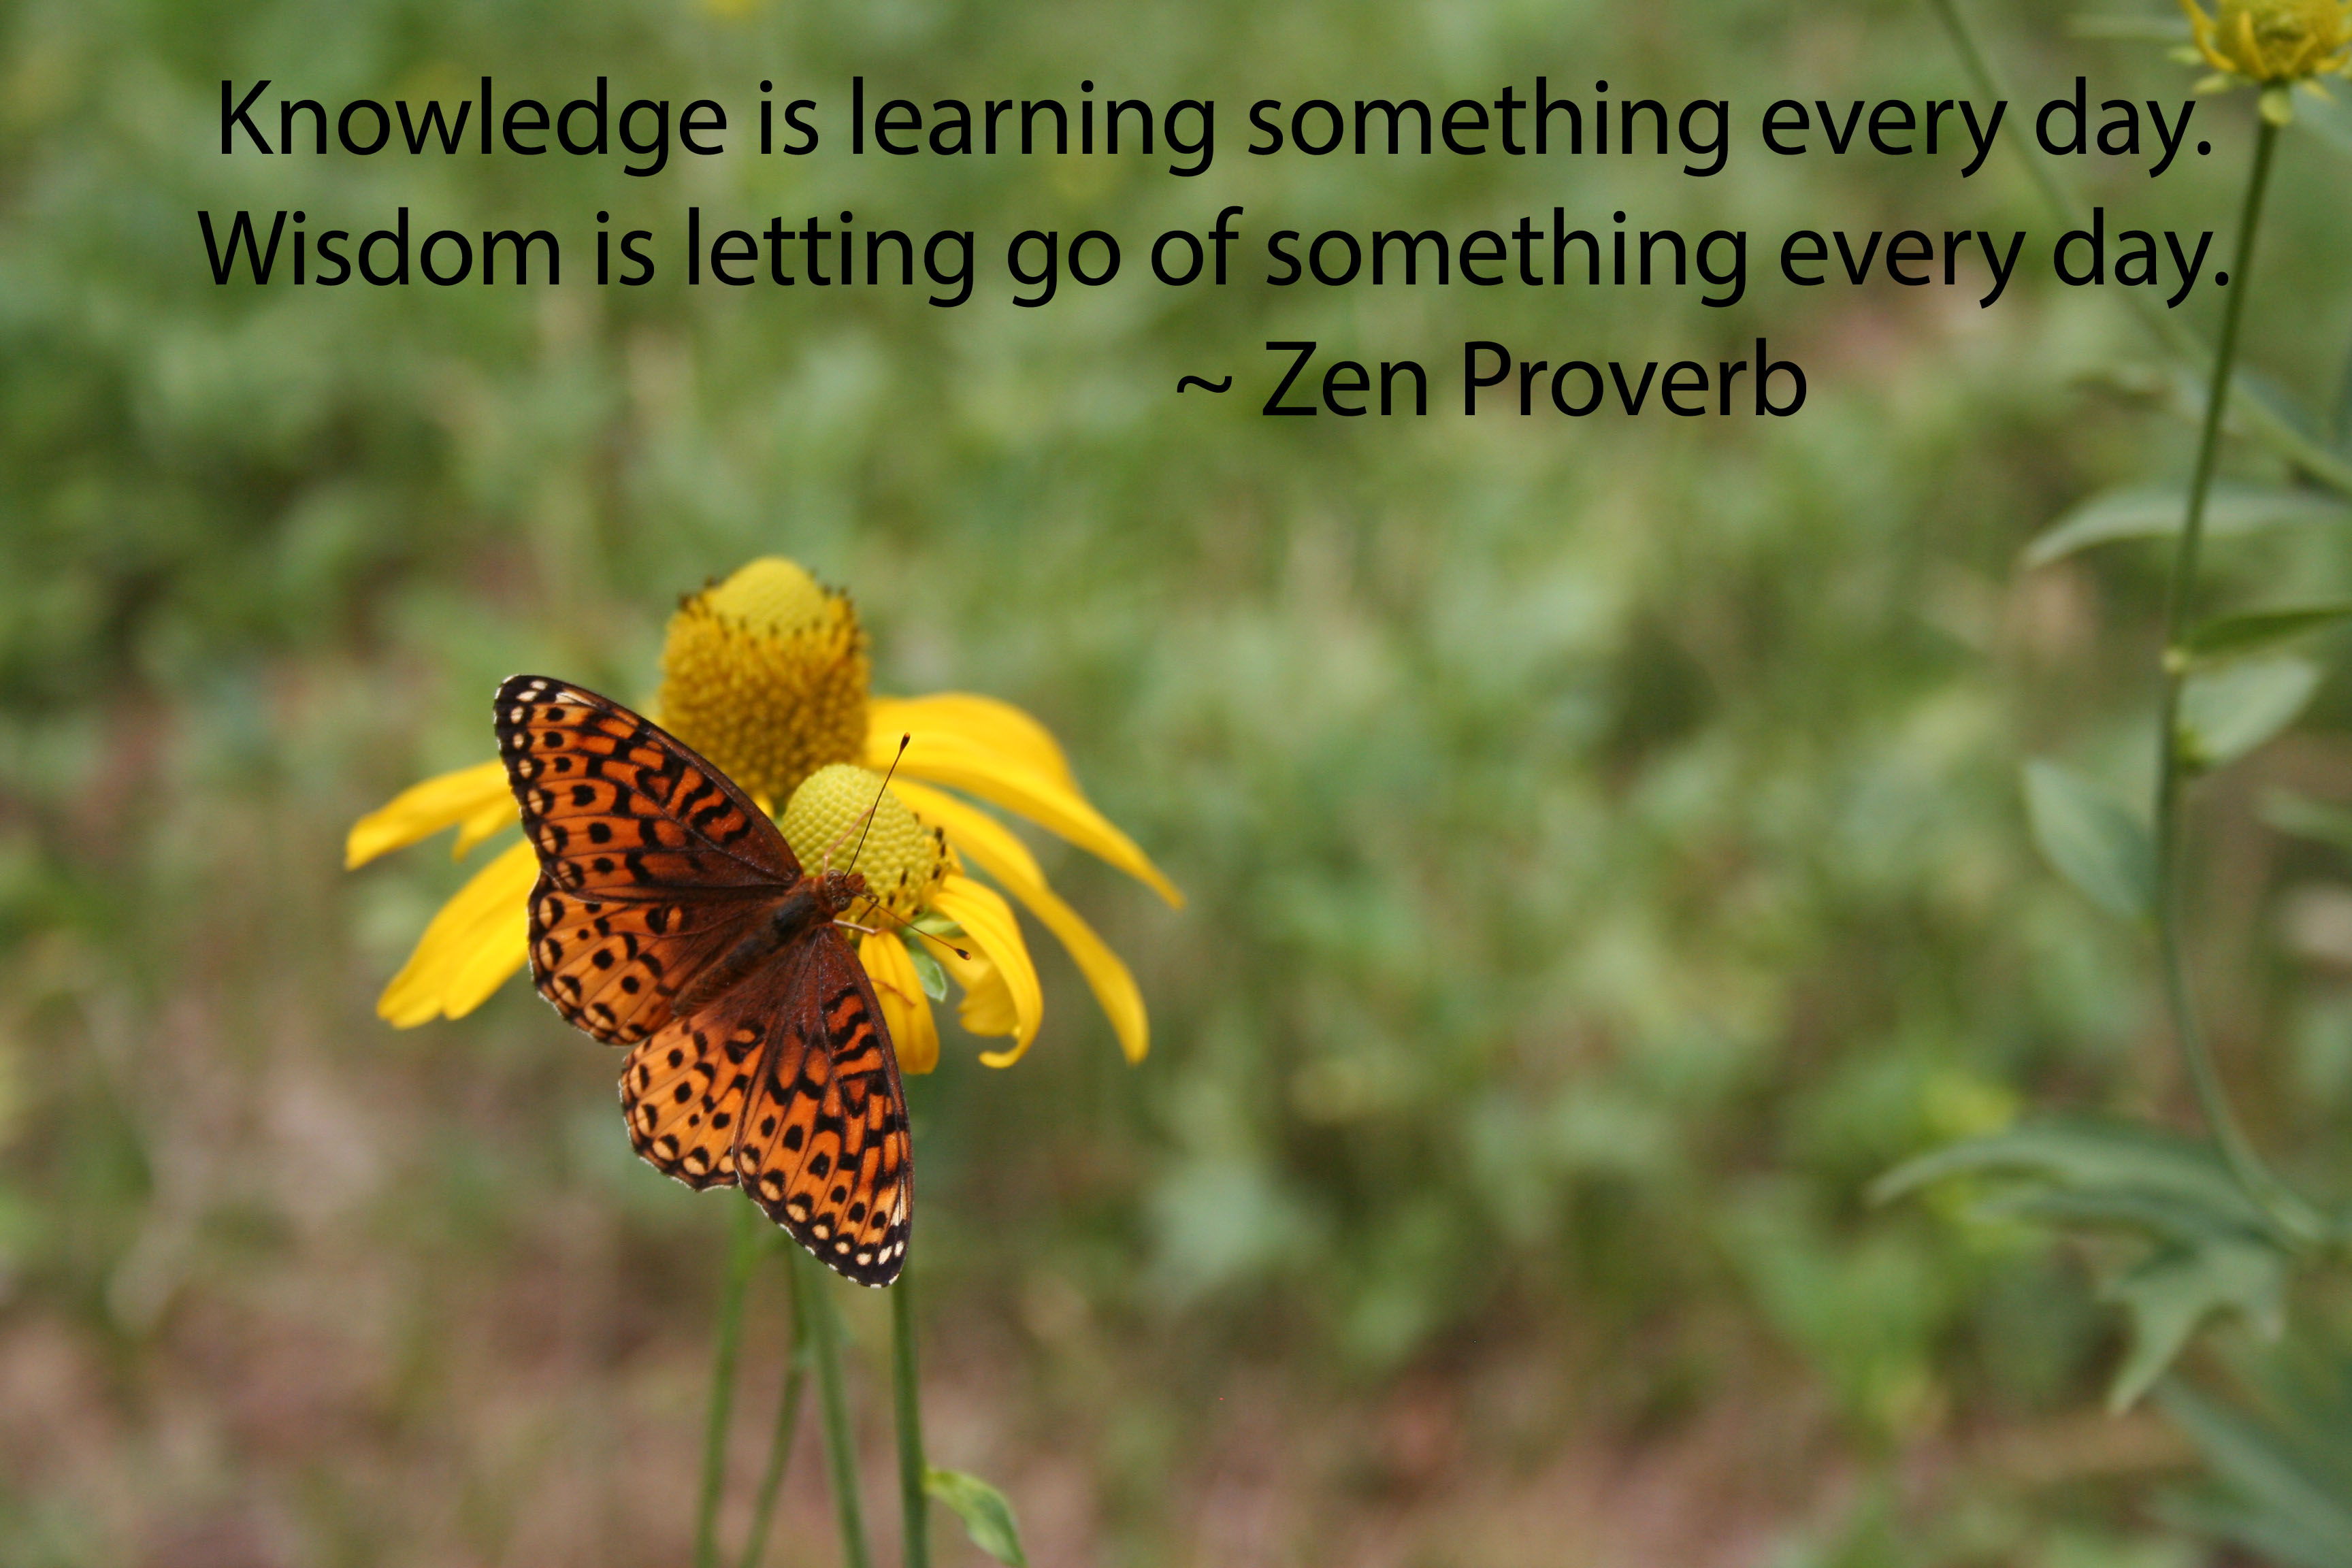 """Knowledge is learning something every day. Wisdom is letting go of something every day."" - Zen proverb written on photo of a butterfly on a flower."